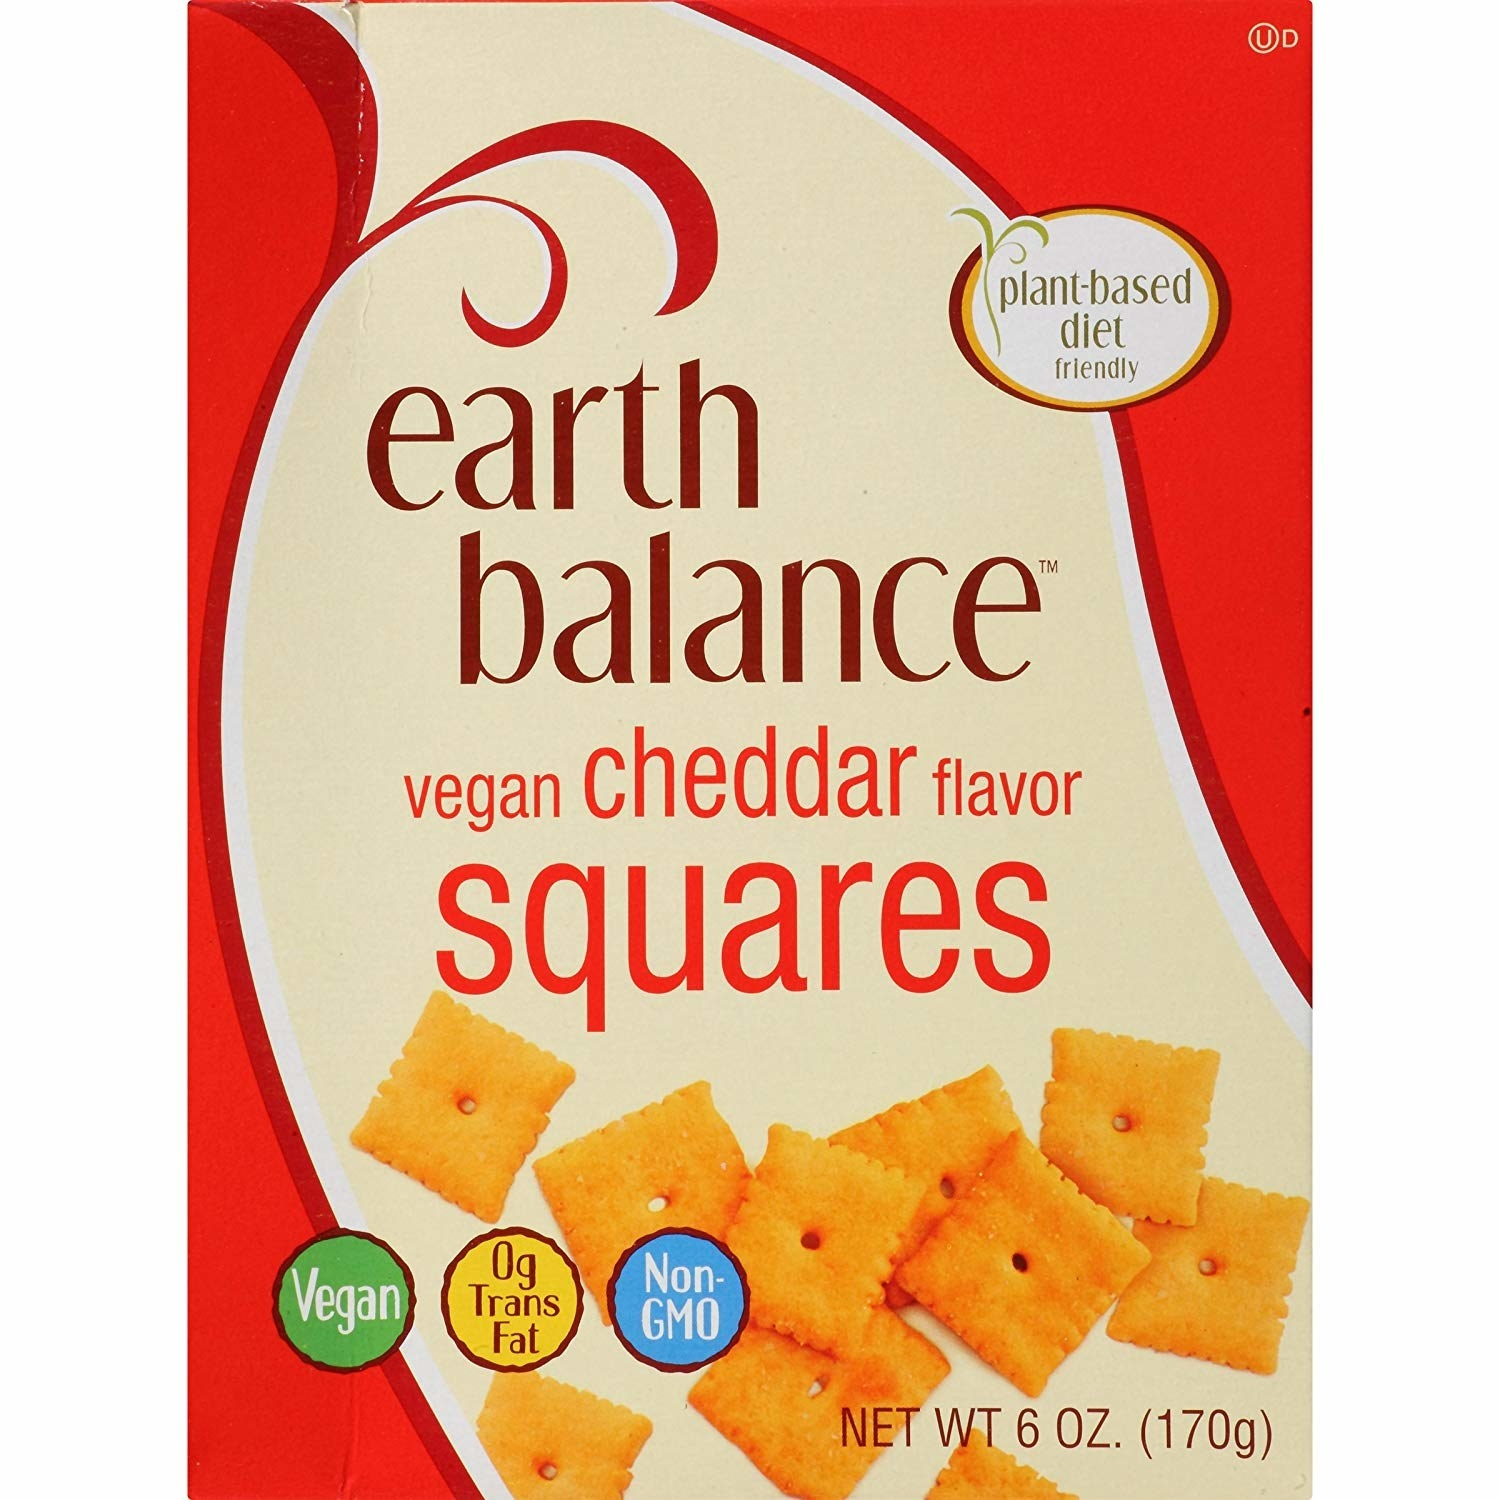 """Earth Balance cheddar squares taste just like Cheez-Its. So flavourful and buttery and addictive!""—laurens4f3d72397"